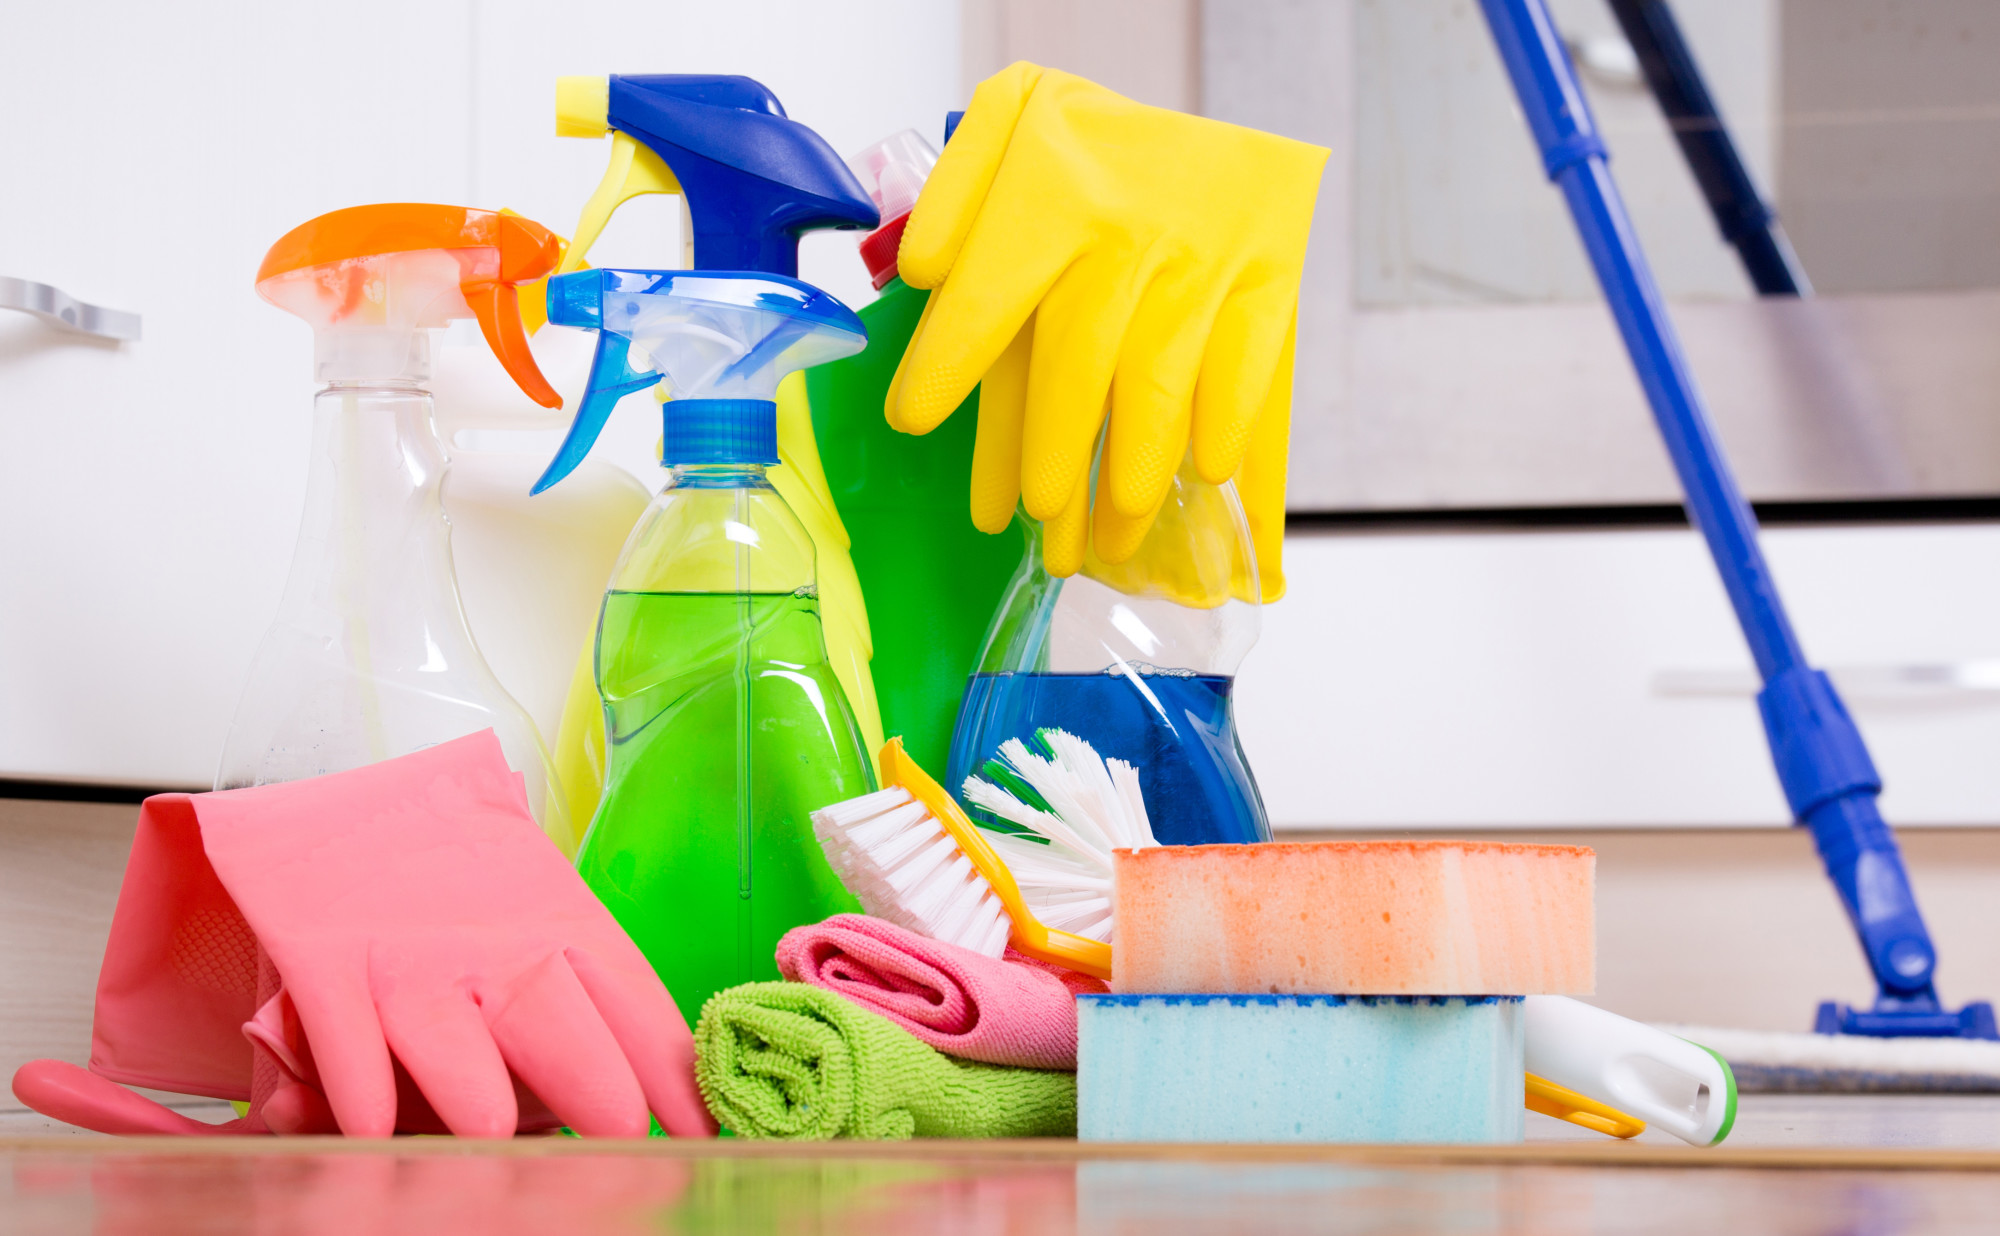 5 Safety Tips for Using Household Cleaning Products During COVID-19